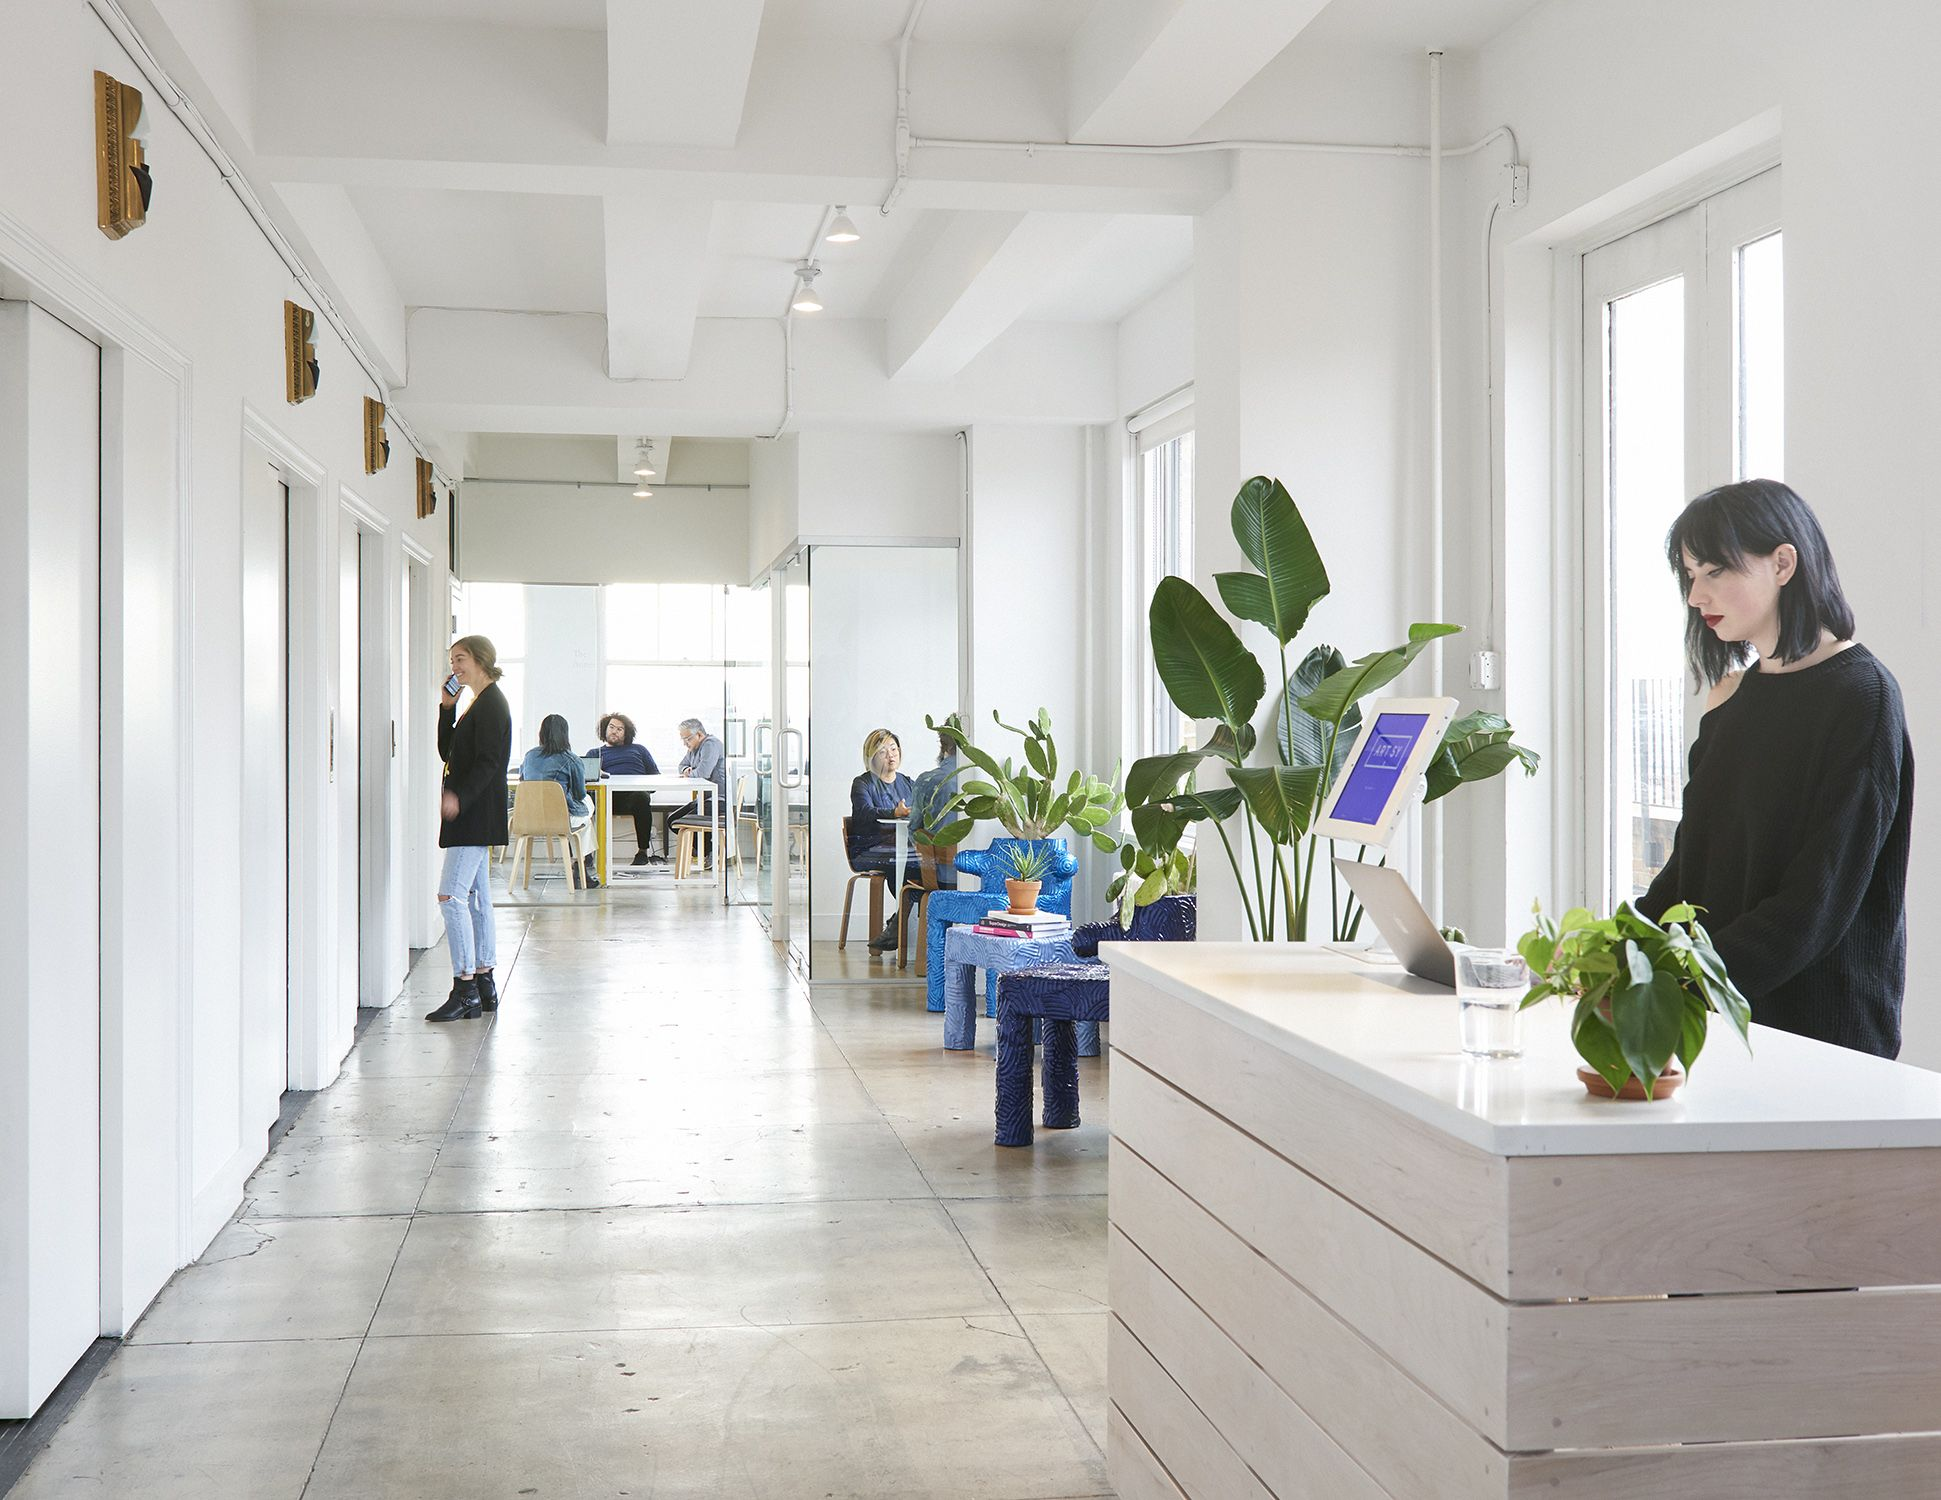 Artsy's offices in New York